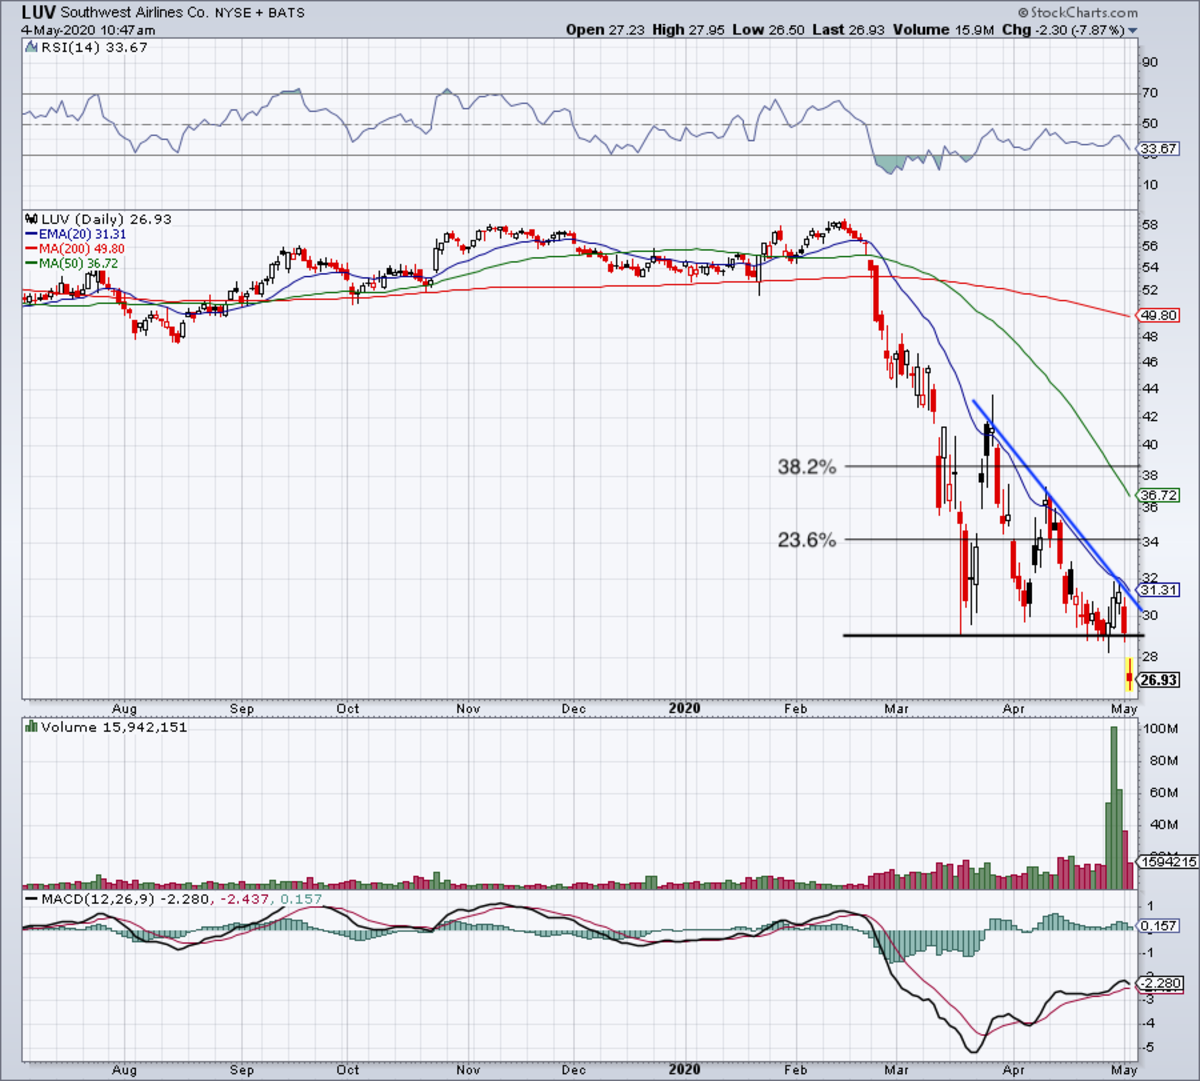 Daily chart of Southwest stock.